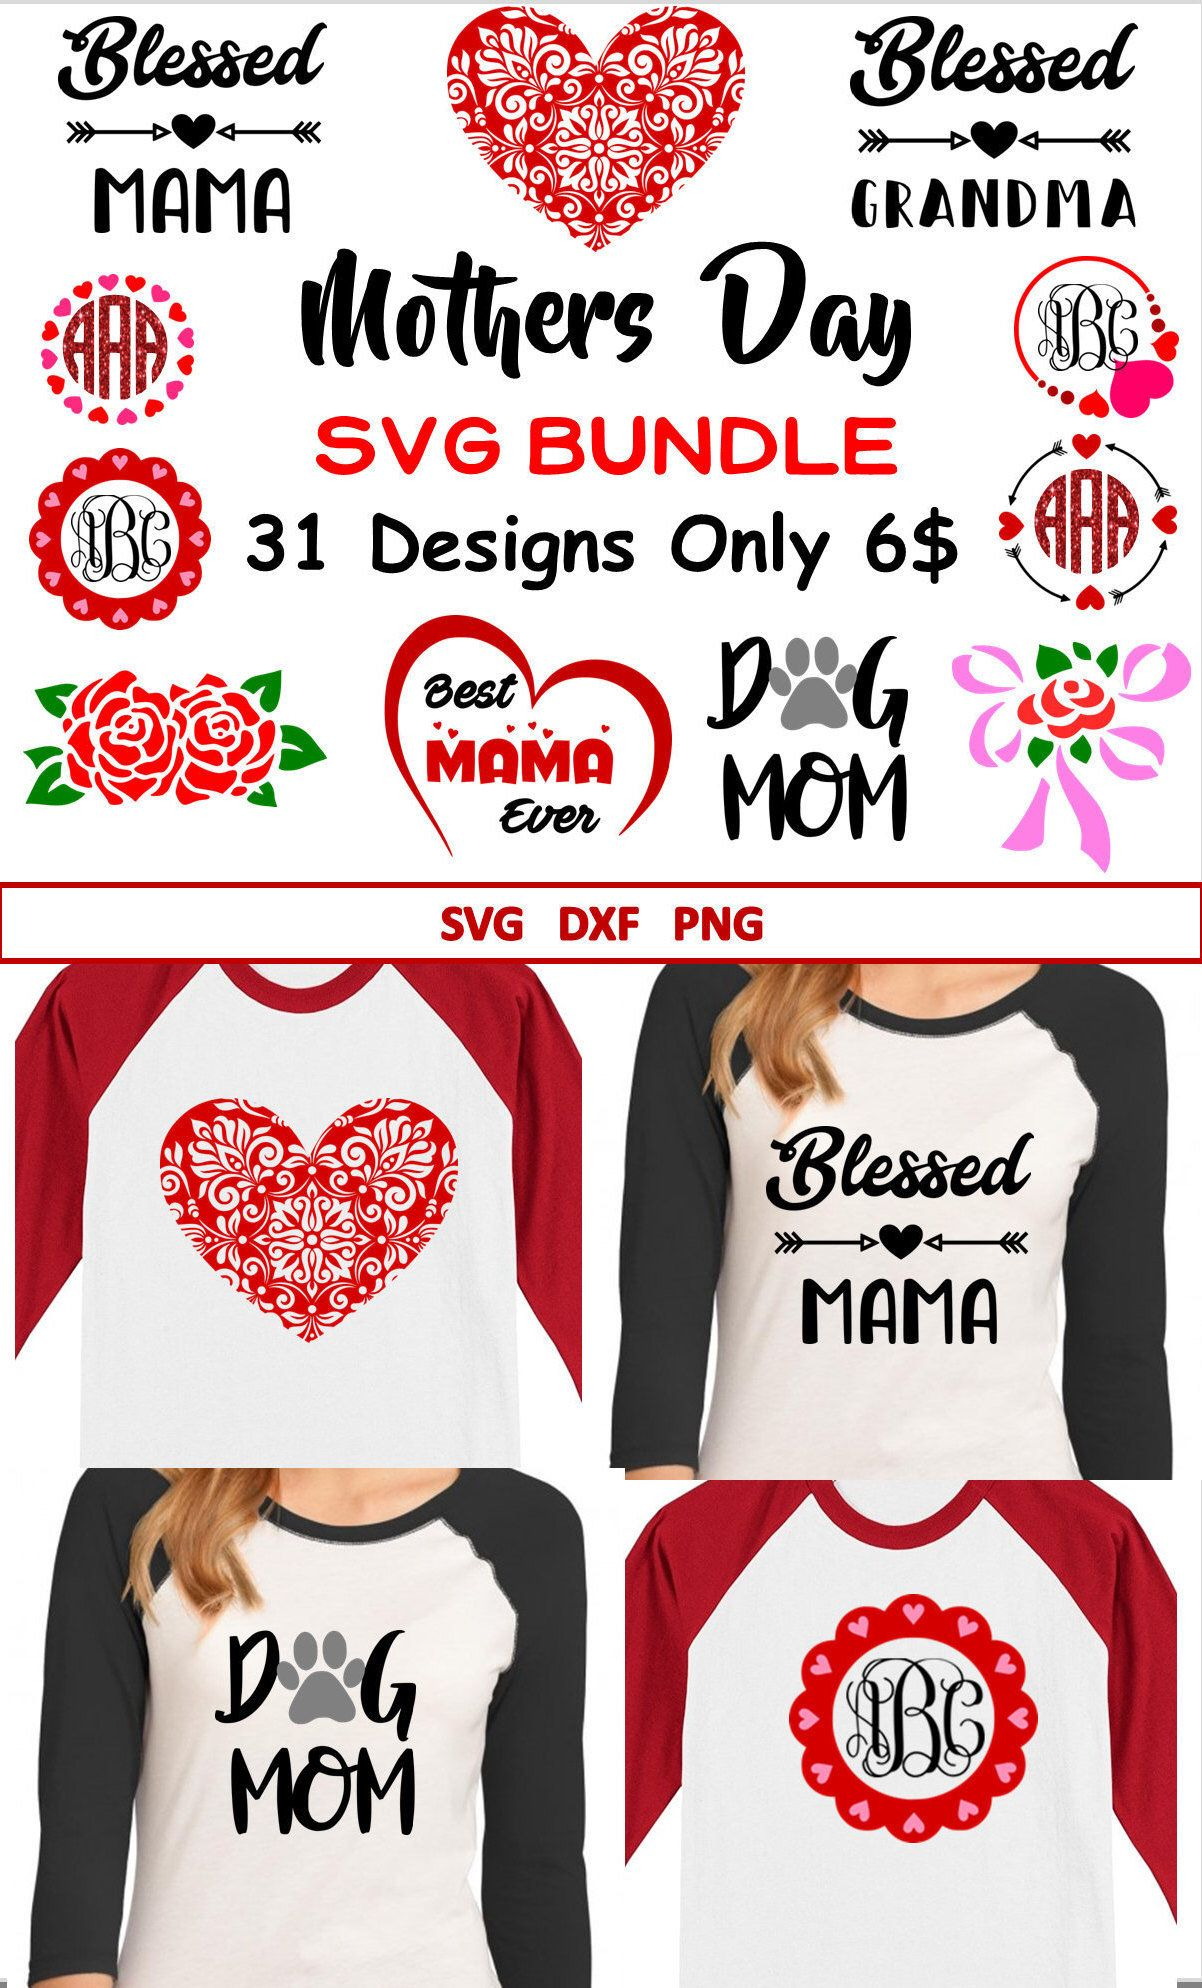 Free Mom svg bundle, mom svg, svg bundle, svg bundles, mother svg, mothers day svg bundle included are 6 svg, 6 dxf, and 6 eps files that are ready for your cutting machine. Mothers Day Svg Bundle Mothers Day Monograms Svg For Cricut Etsy Diy For Girls Diy Mothers Day Gifts Monogram Svg SVG, PNG, EPS, DXF File